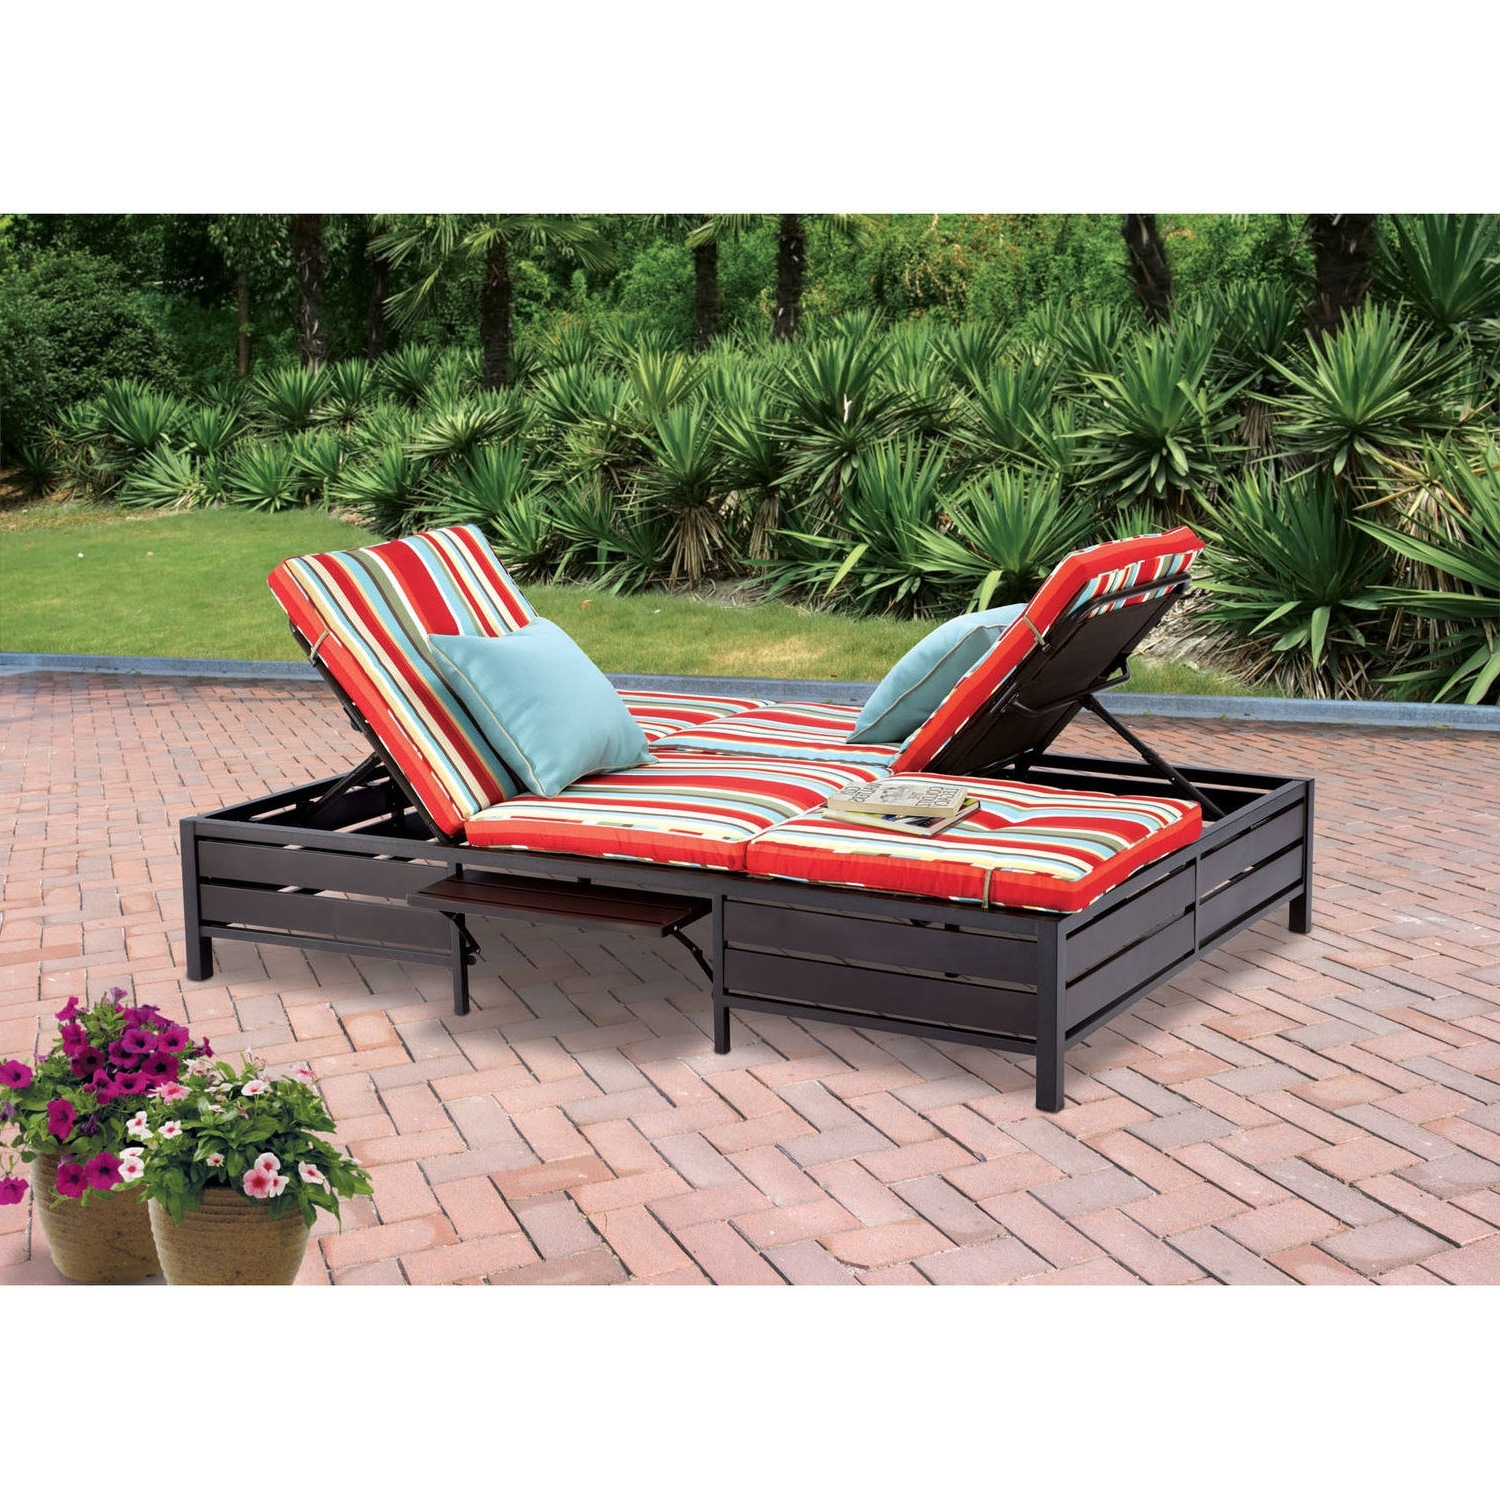 Walmart Chaise Lounges Intended For Famous Mainstays Outdoor Double Chaise Lounger, Stripe, Seats 2 – Walmart (View 8 of 15)